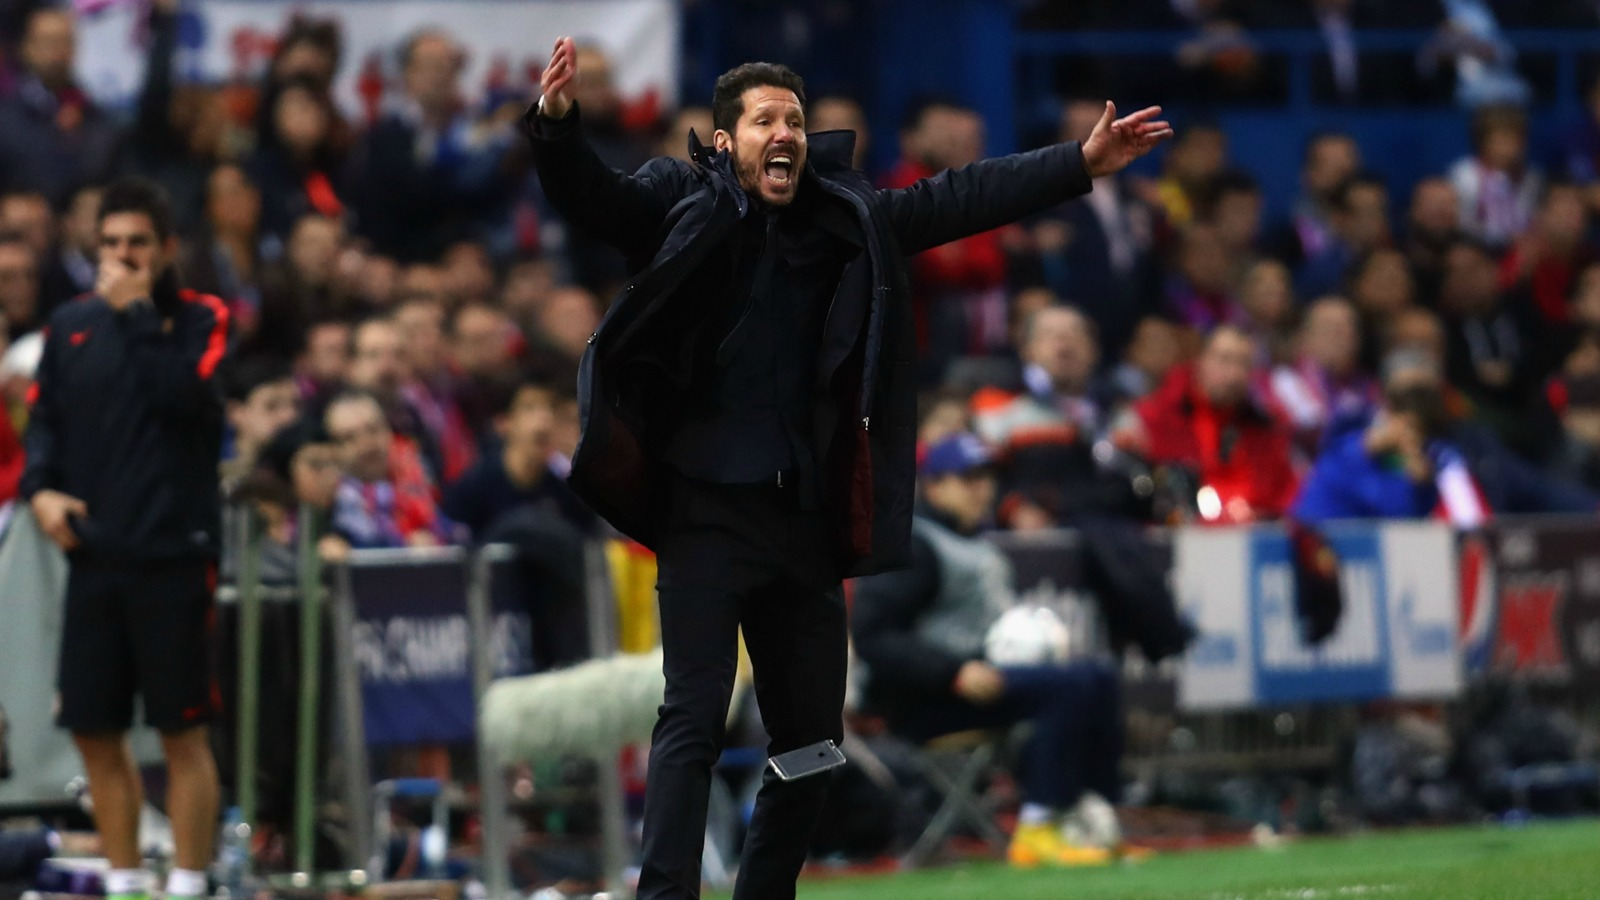 Diego Simeone basically yelled Atletico Madrid into the Champions League semifinals